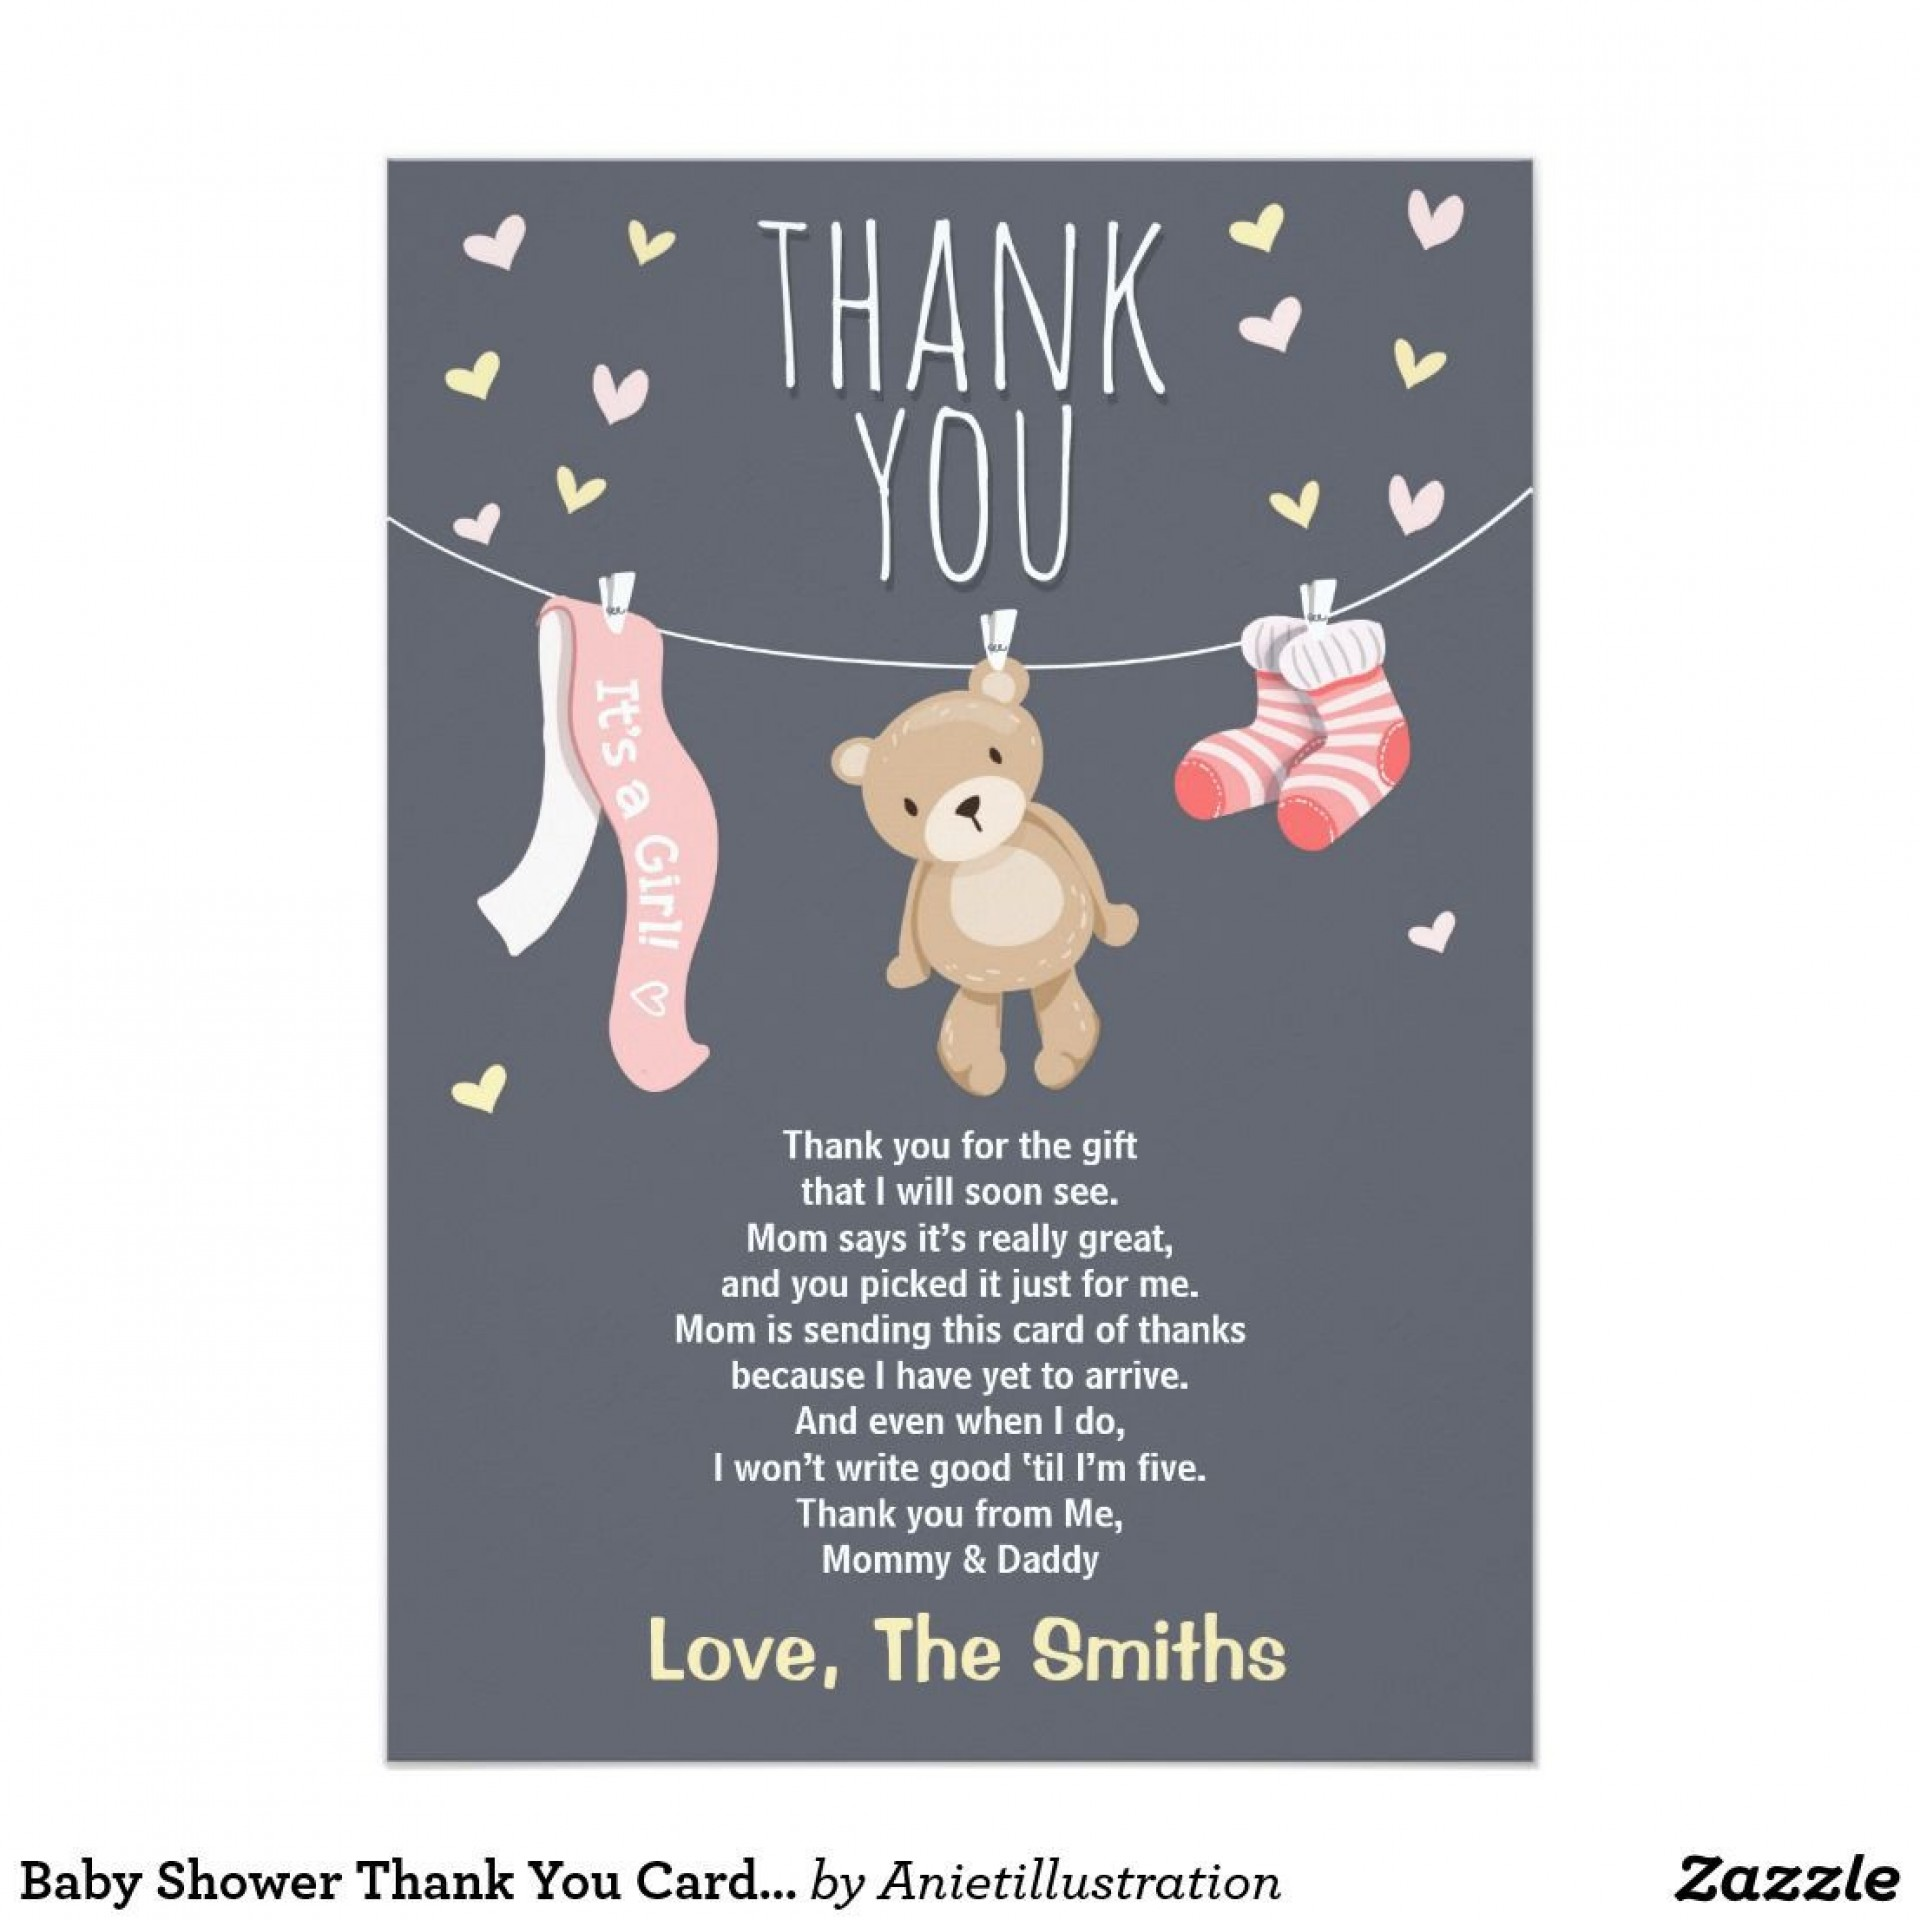 004 Stunning Thank You Note Template Baby Shower Design  Card Free Sample For Letter Gift1920